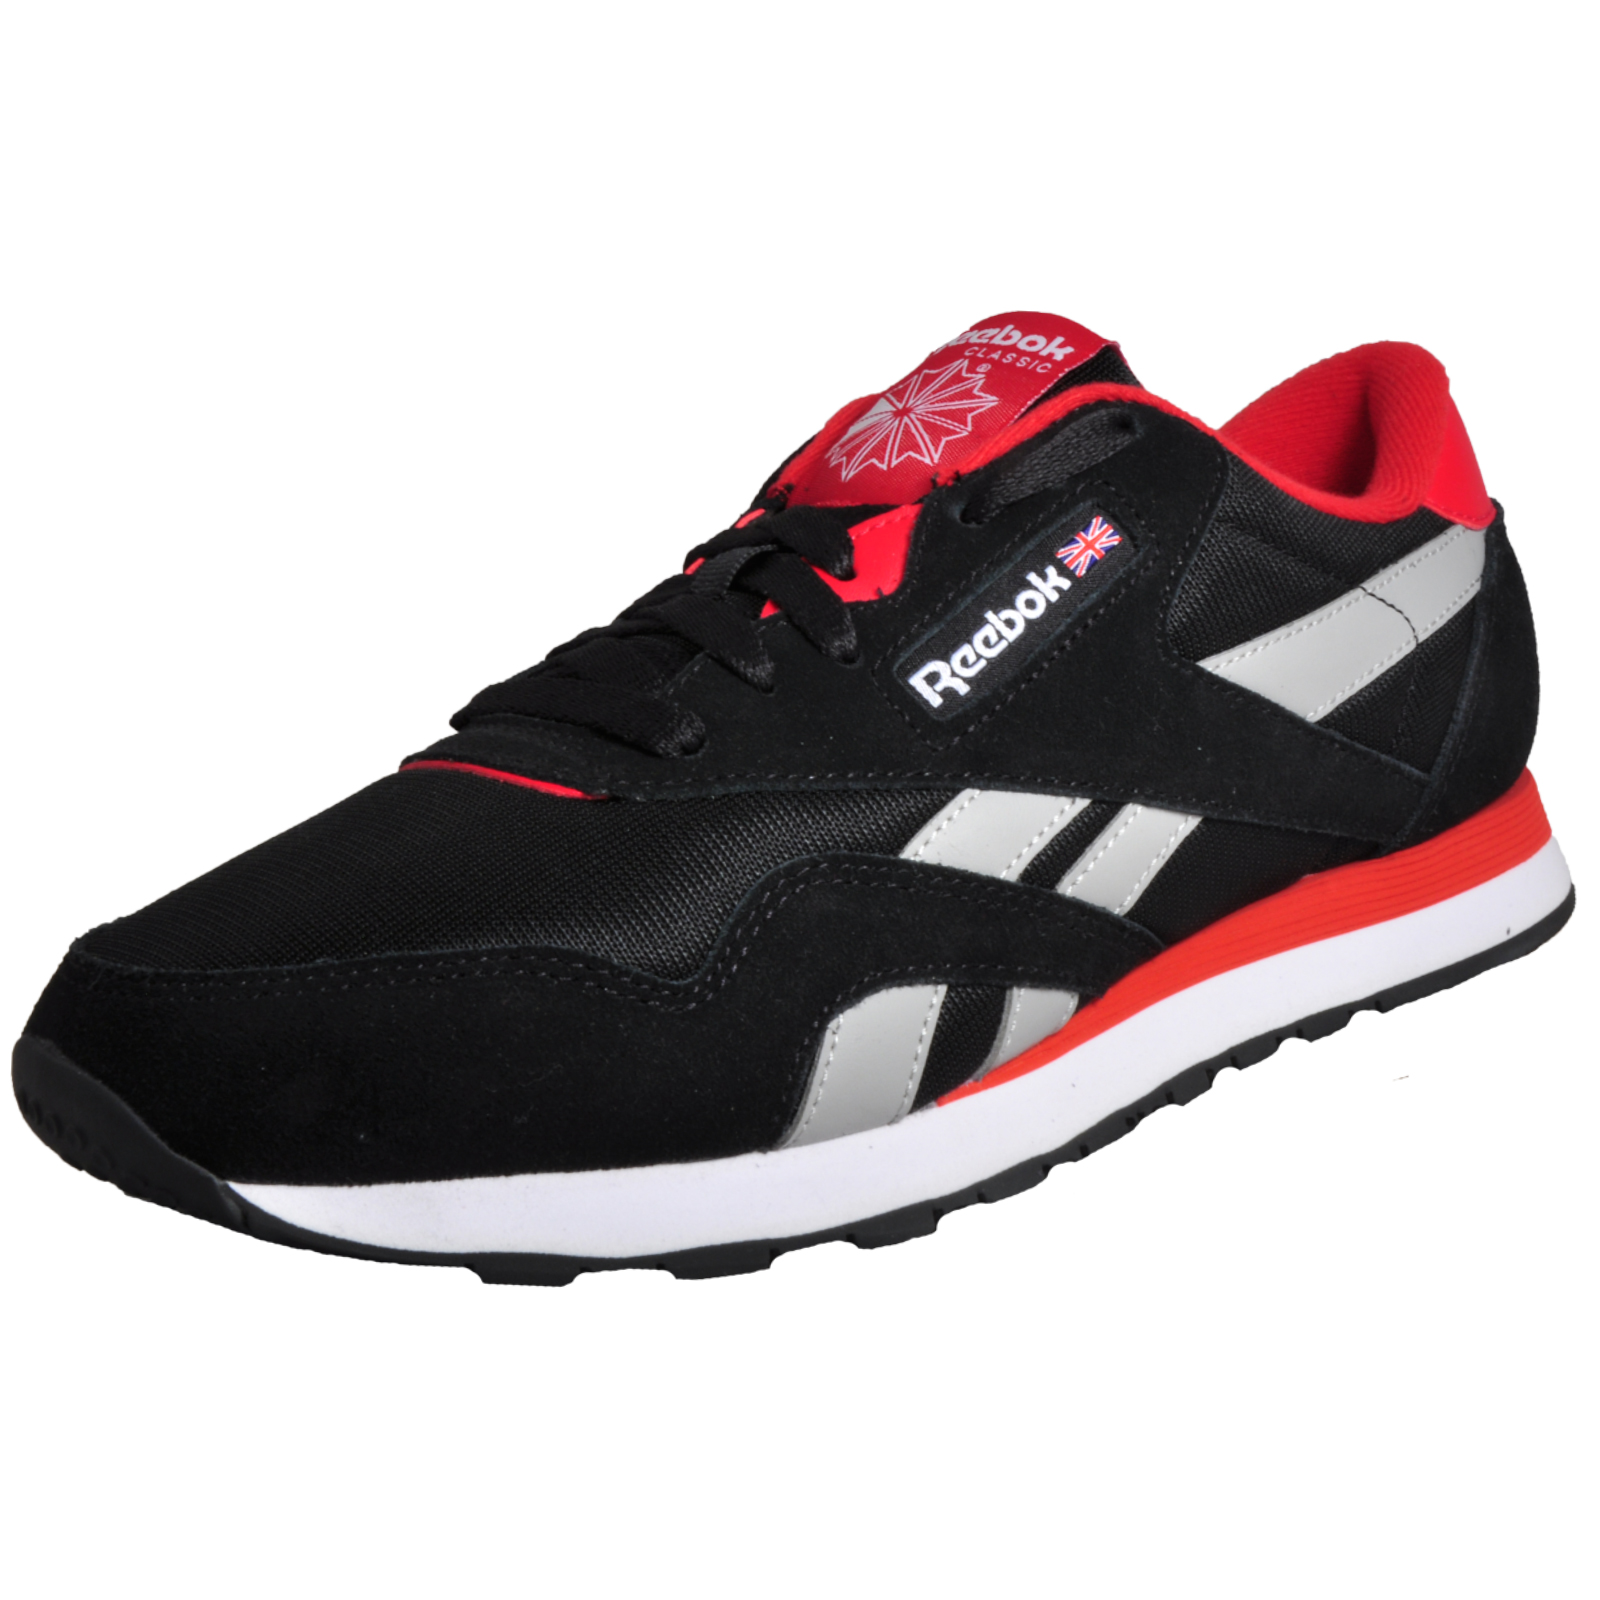 d1f1d941461a32 Details about Reebok Classic Nylon TS Uni Fashion Fitness Casual Trainers  Black